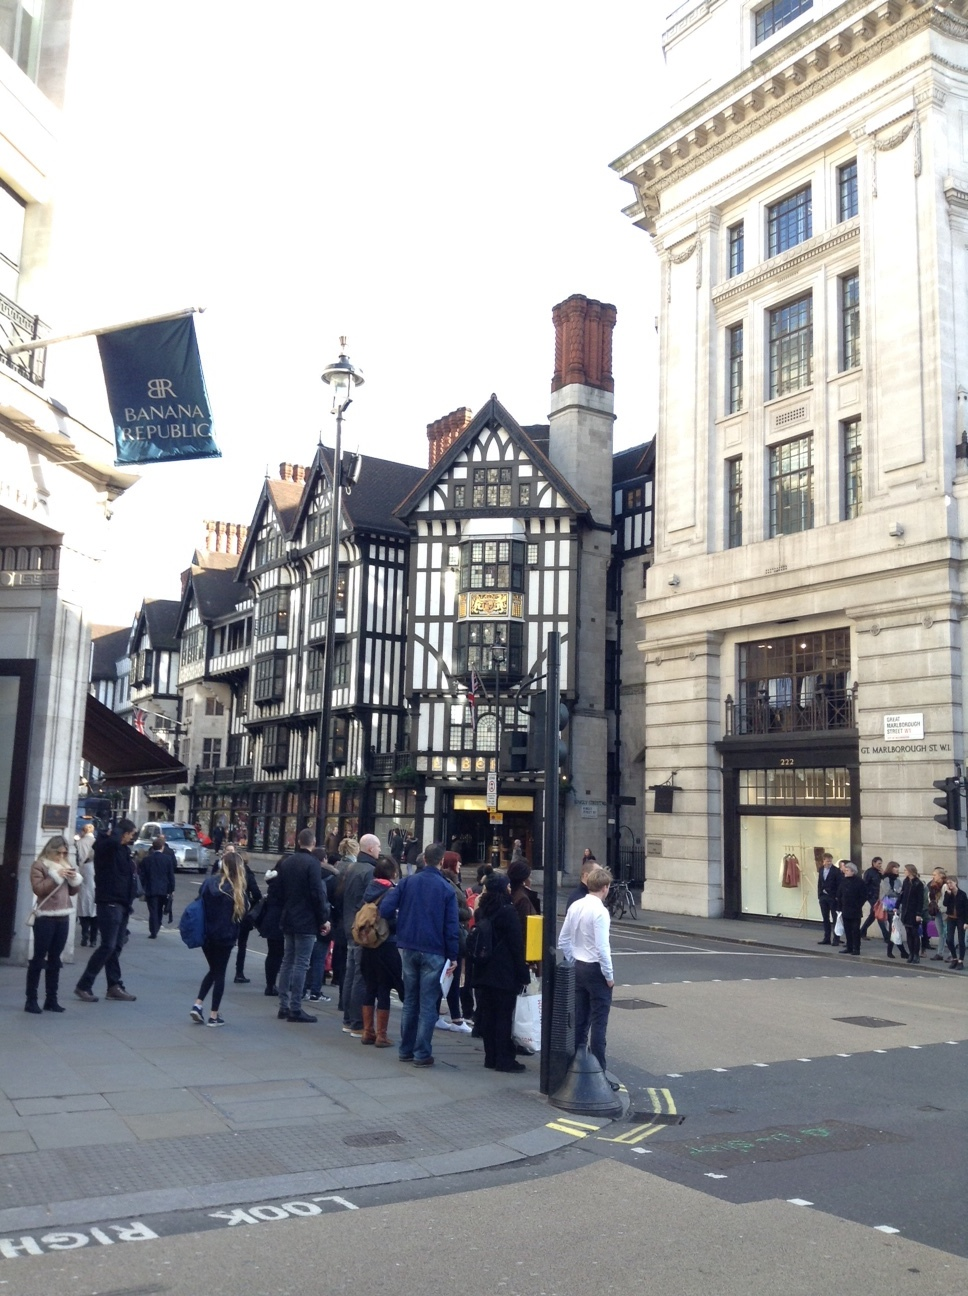 Liberty of London, a beautiful half timber building tucked off of Regent Street.